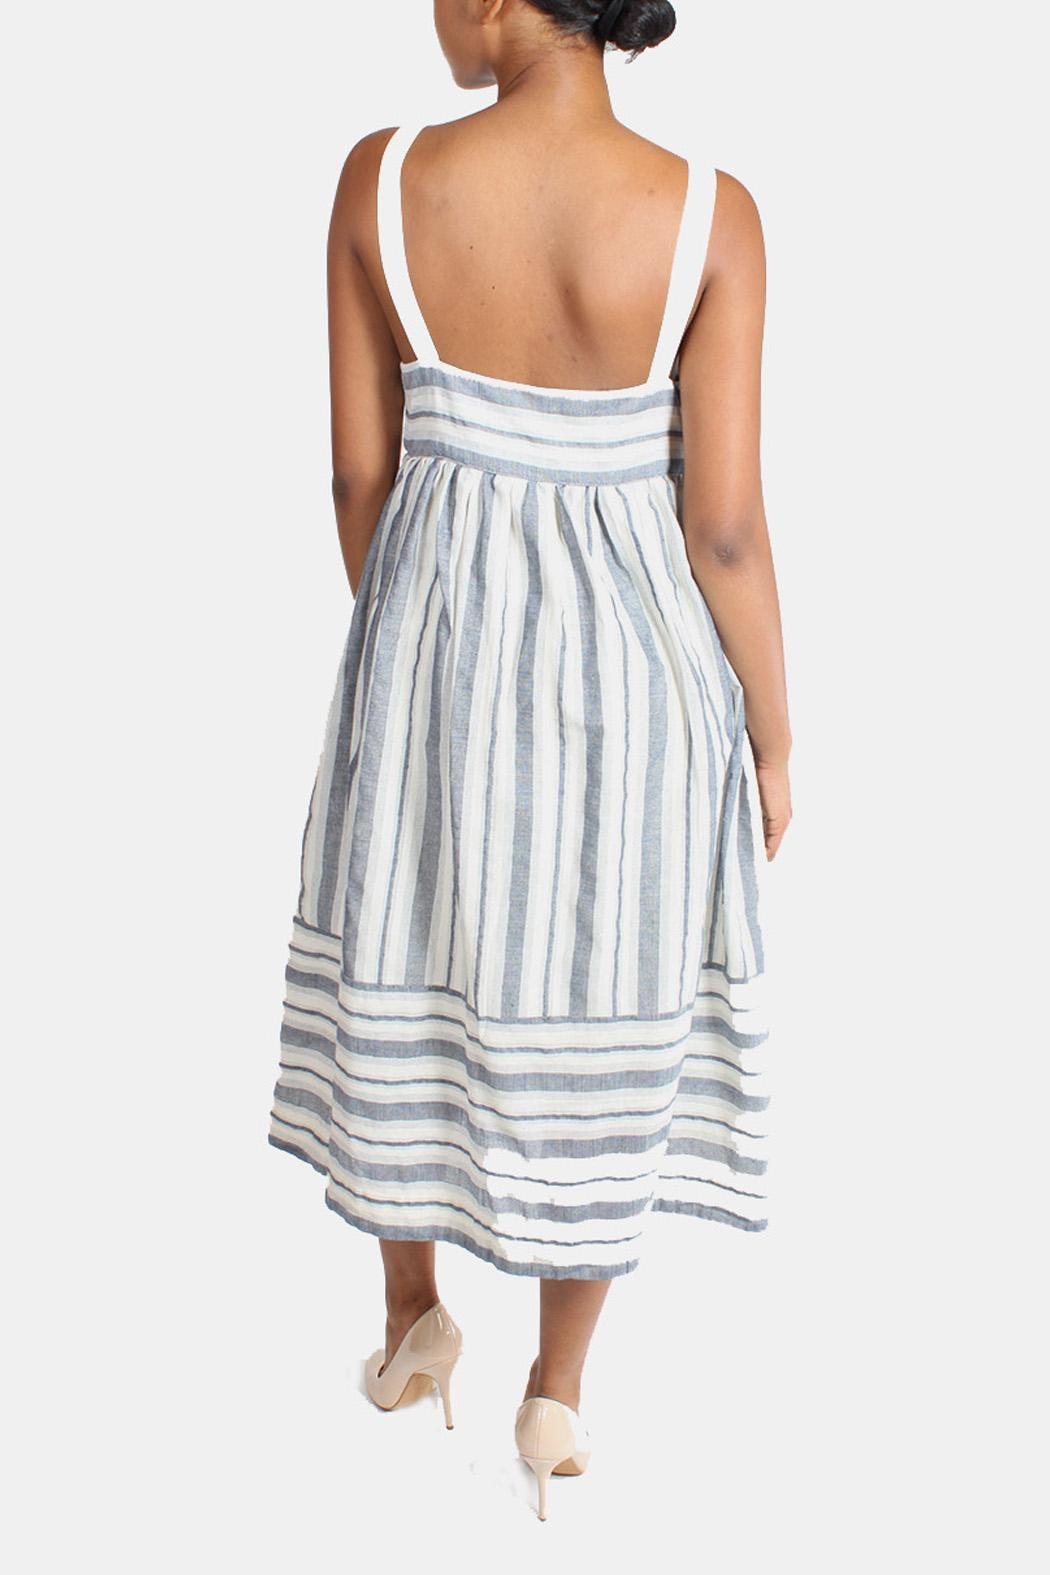 Ciel Shoreside Striped Dress - Back Cropped Image